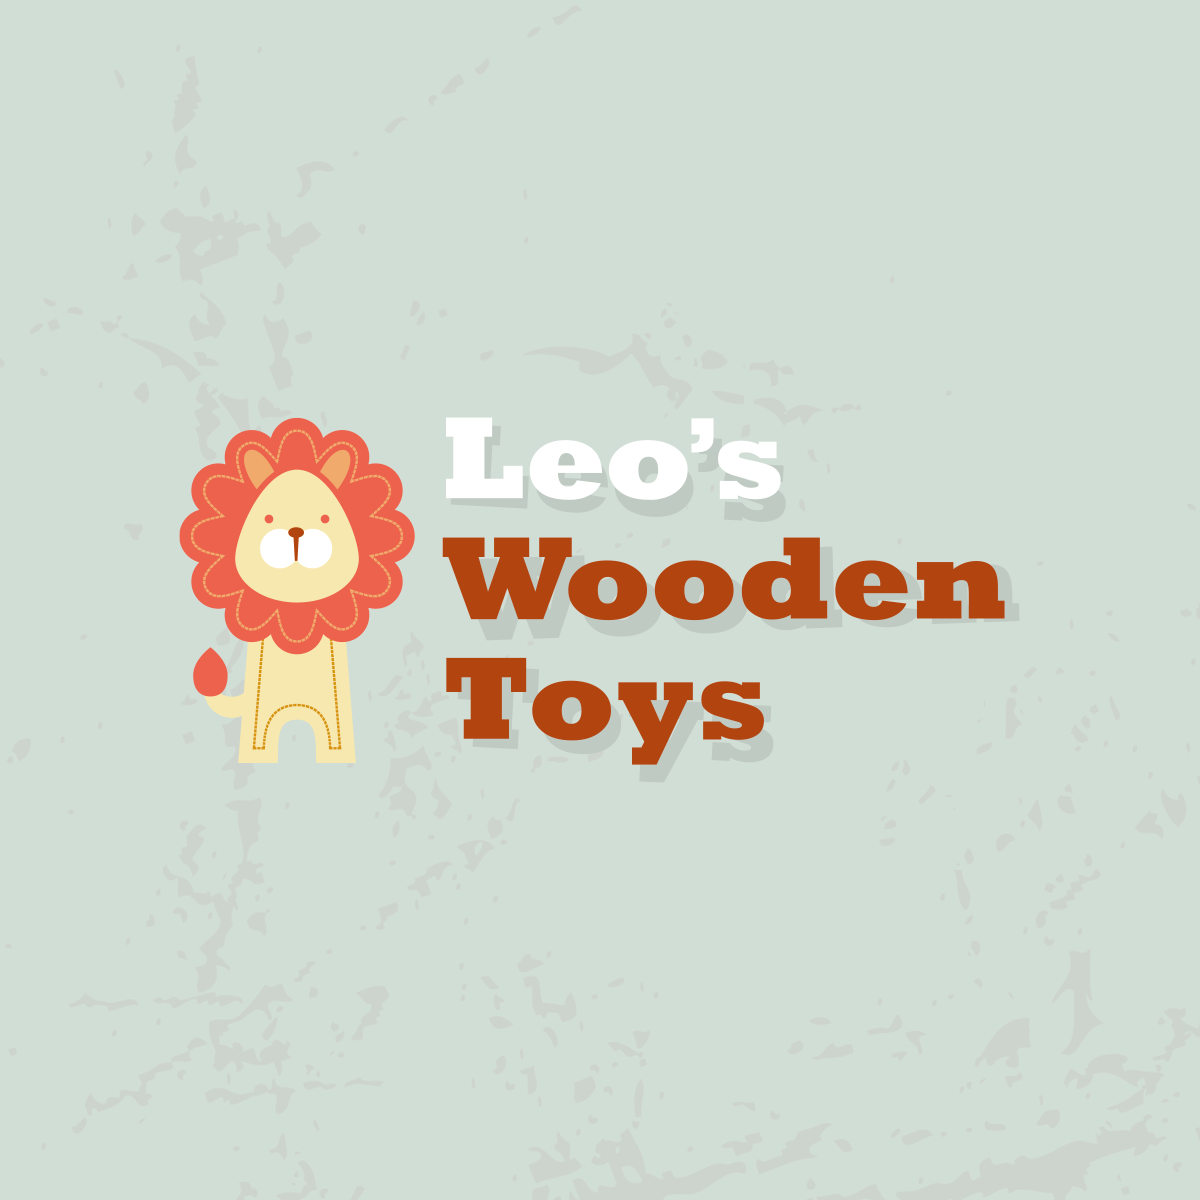 Identity for Leo's Wooden Toys, Leo's Wooden Toys logo